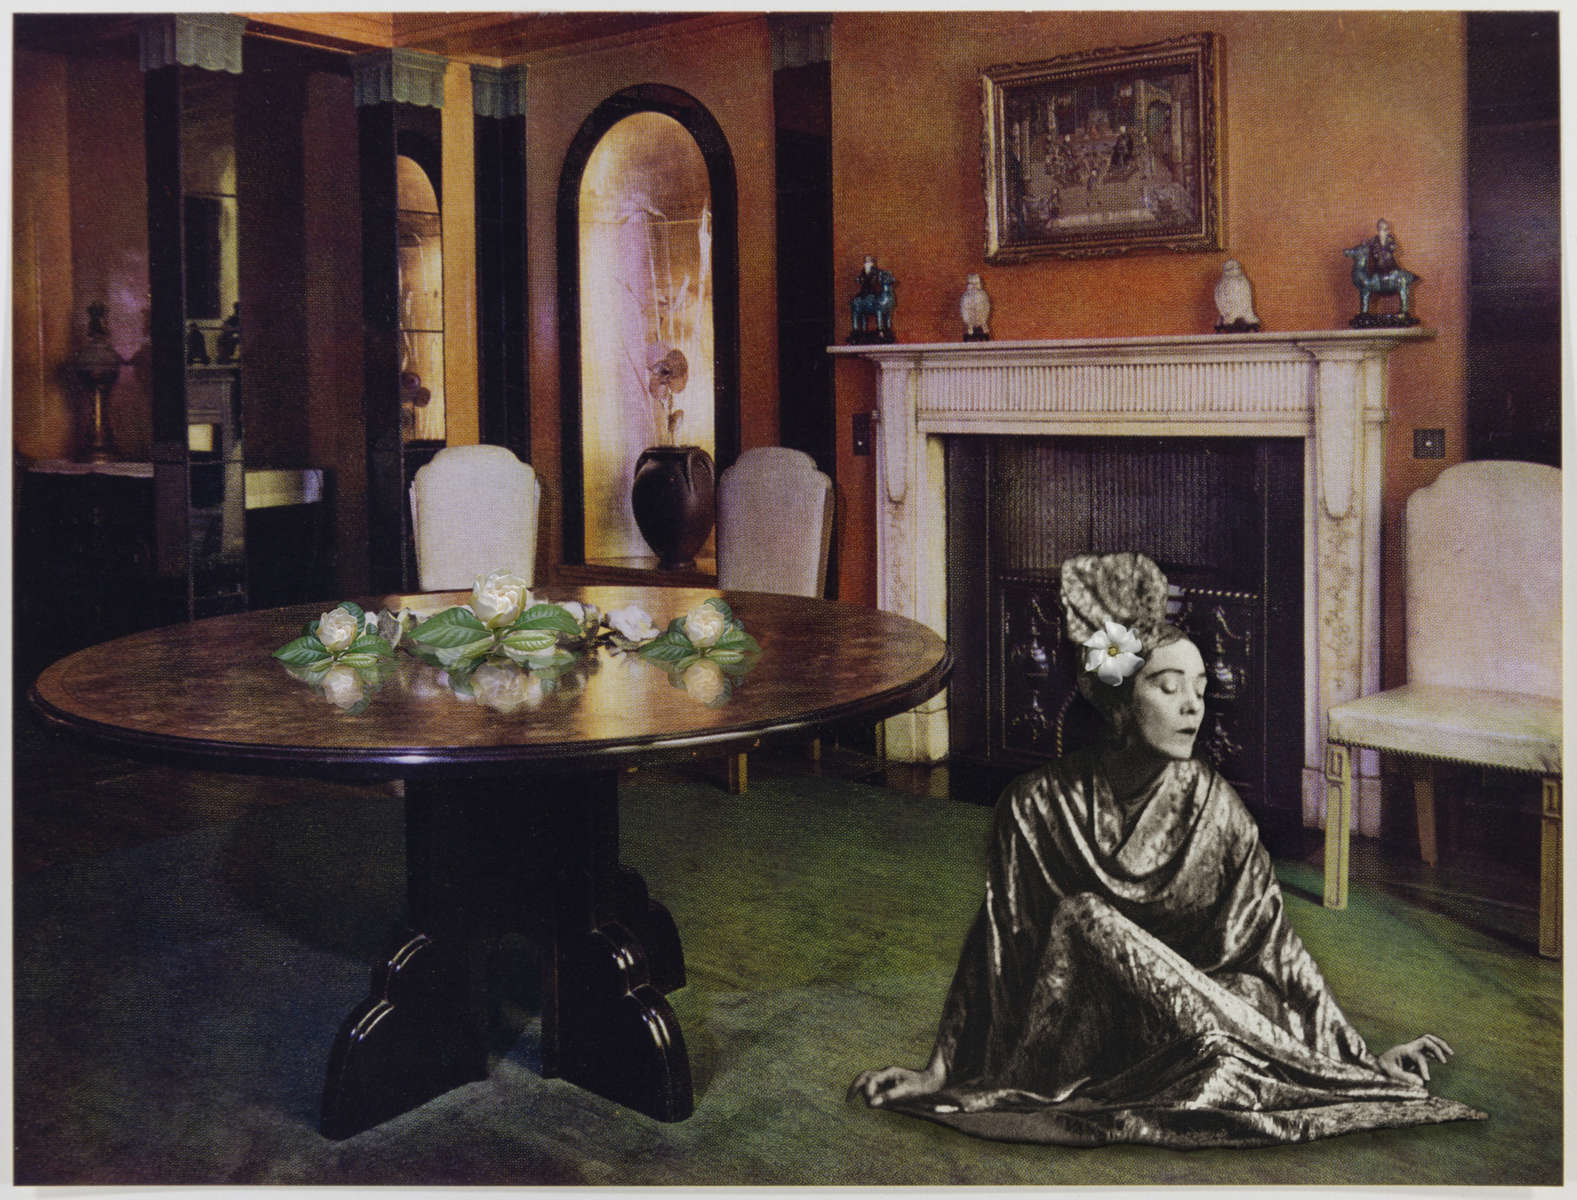 This dining room, designed by R. W. Symonds and Robert Lutens for the Baroness Ravensdale, shows a scheme devised as a setting for its owner's collection of Chinese jade and lacquer. The walls and ceiling are painted a Venetian red and decorated with pilasters carried out in black mirror glass with fluted caps and bases in Pompeian green. Black mirror glass also forms the architraves, which, lined with lacquered gold leaf, decorate the niches on each side of the fireplace. Gardenias rest gently on the table and in Mary Wigman's hair. (2018)